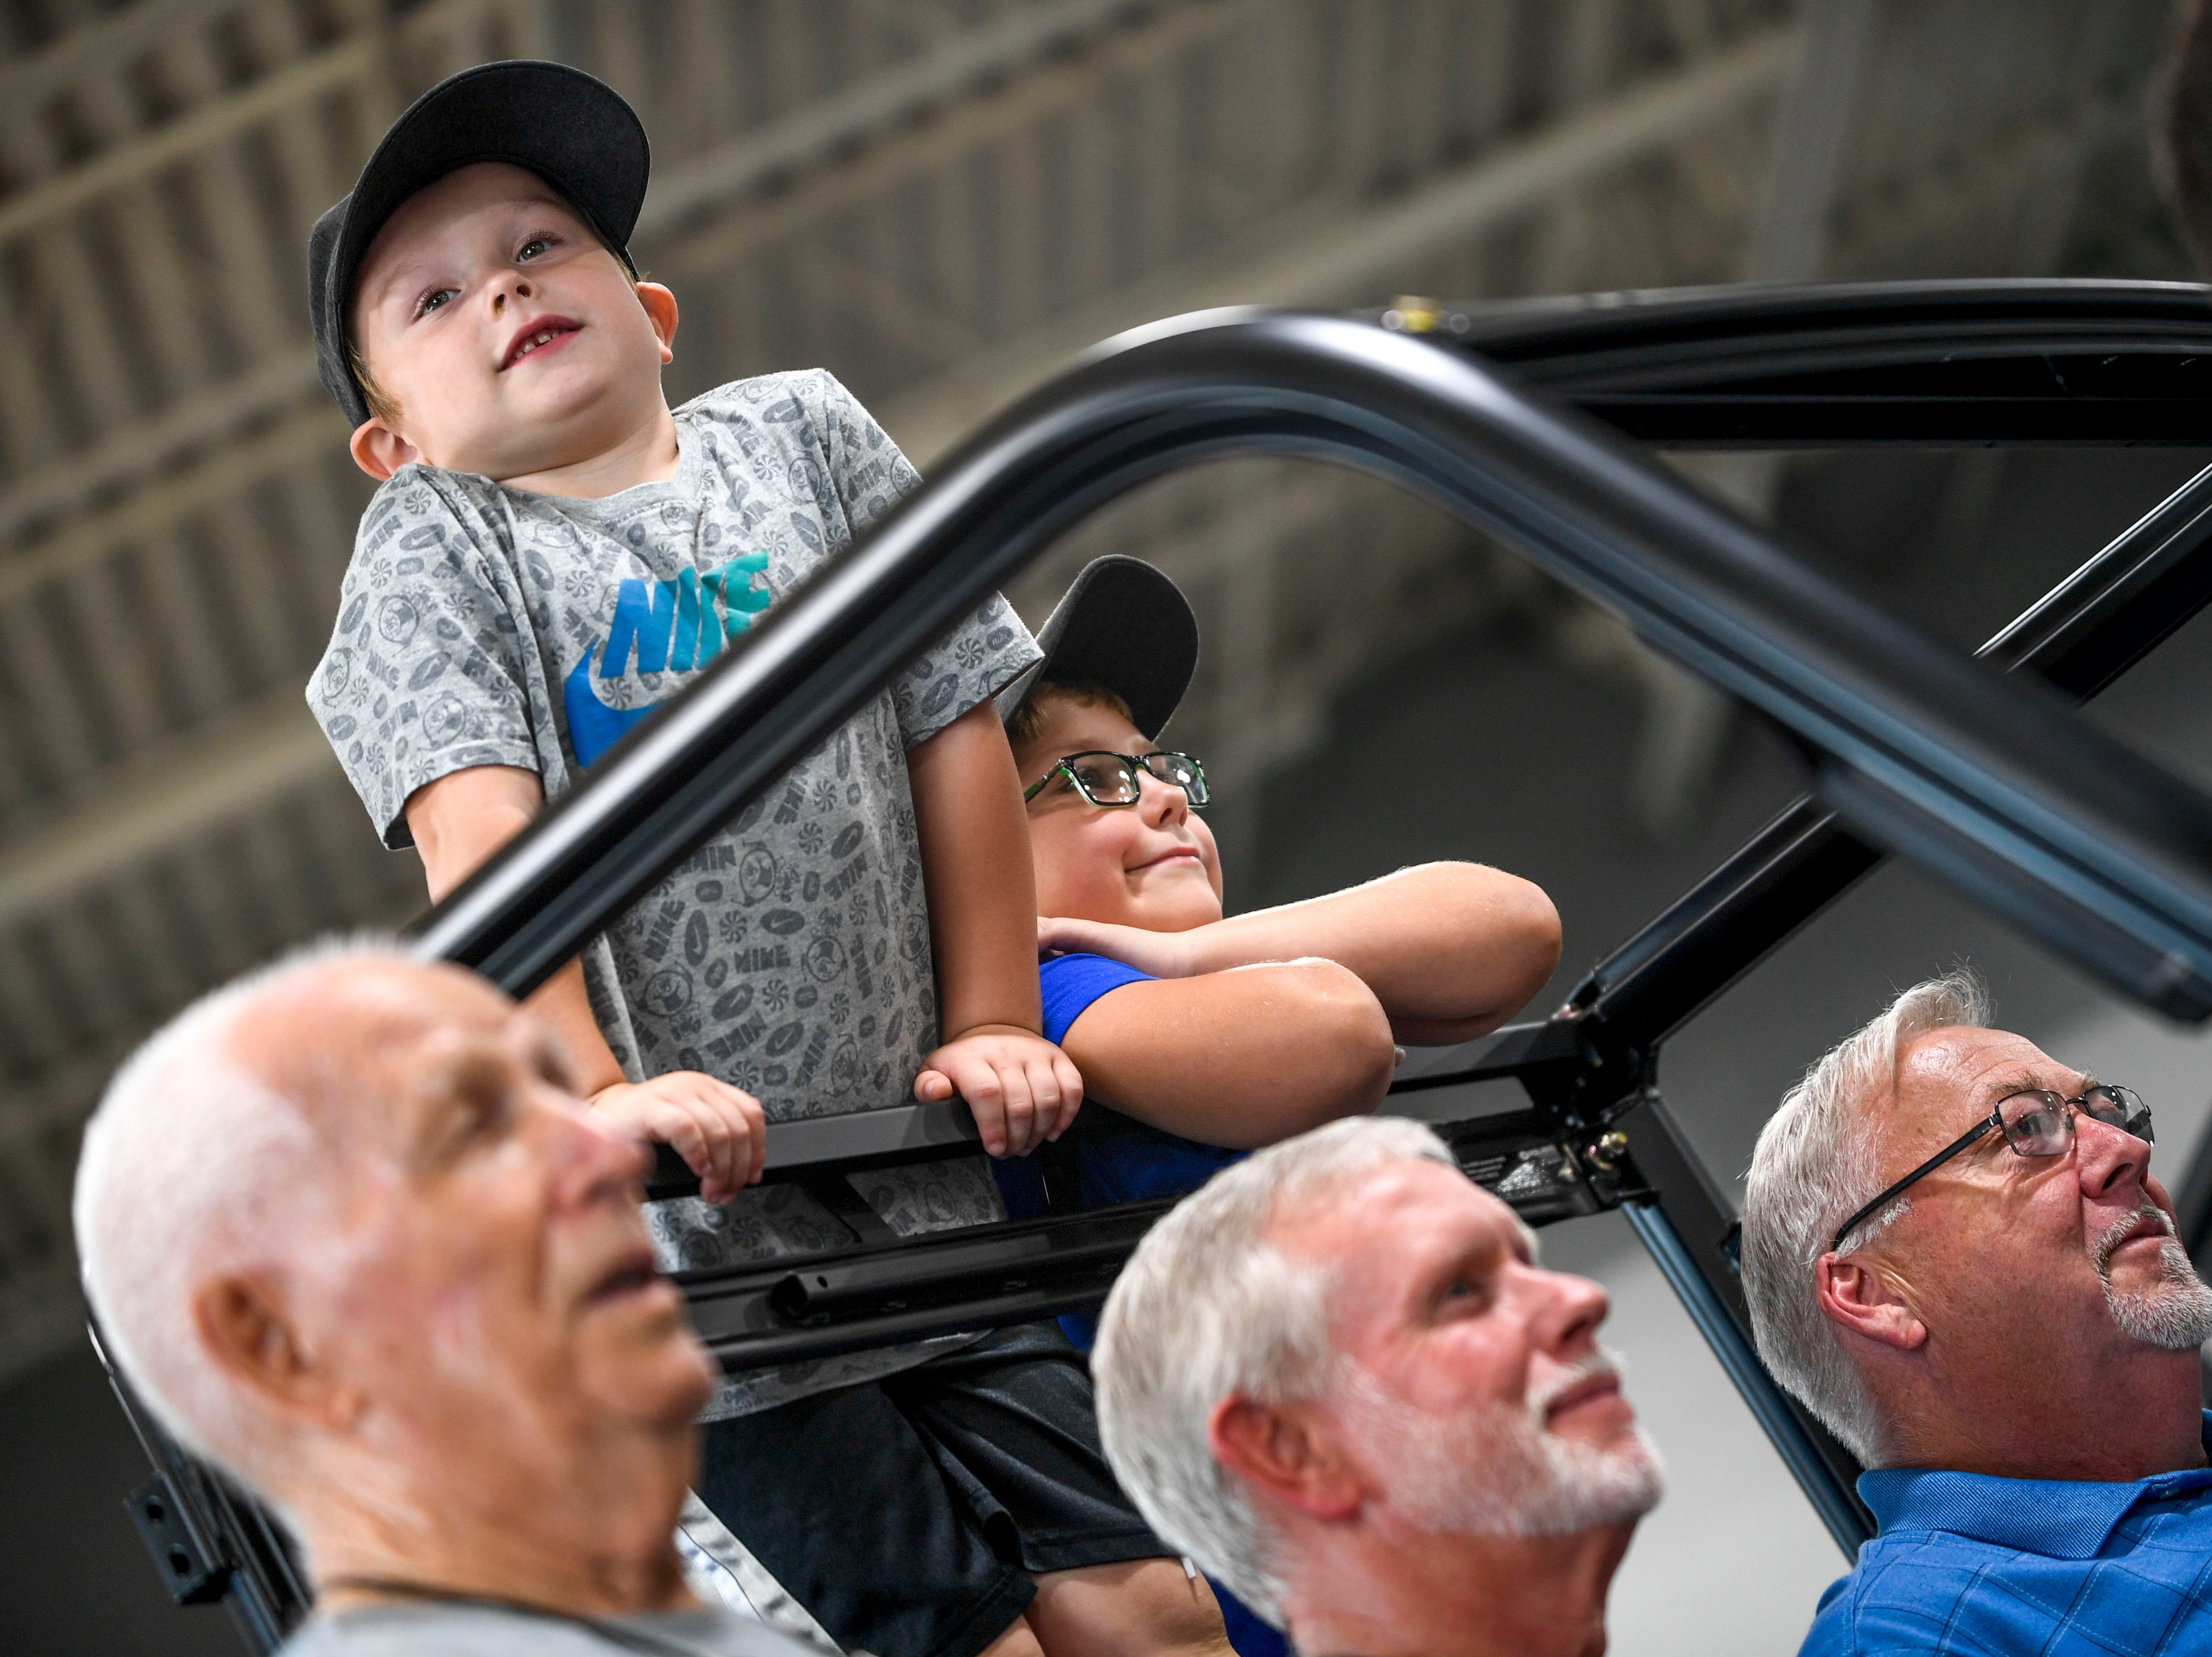 John Patrick Coleman, 4, and his brother Bradley Coleman, 8, right, prop themselves up on the roll cage of a Polaris Ranger their grandfather John Coleman, bottom right corner, won in a contest at Bob's House of Honda in Jackson, Tenn., on Thursday, Sept. 20, 2018.